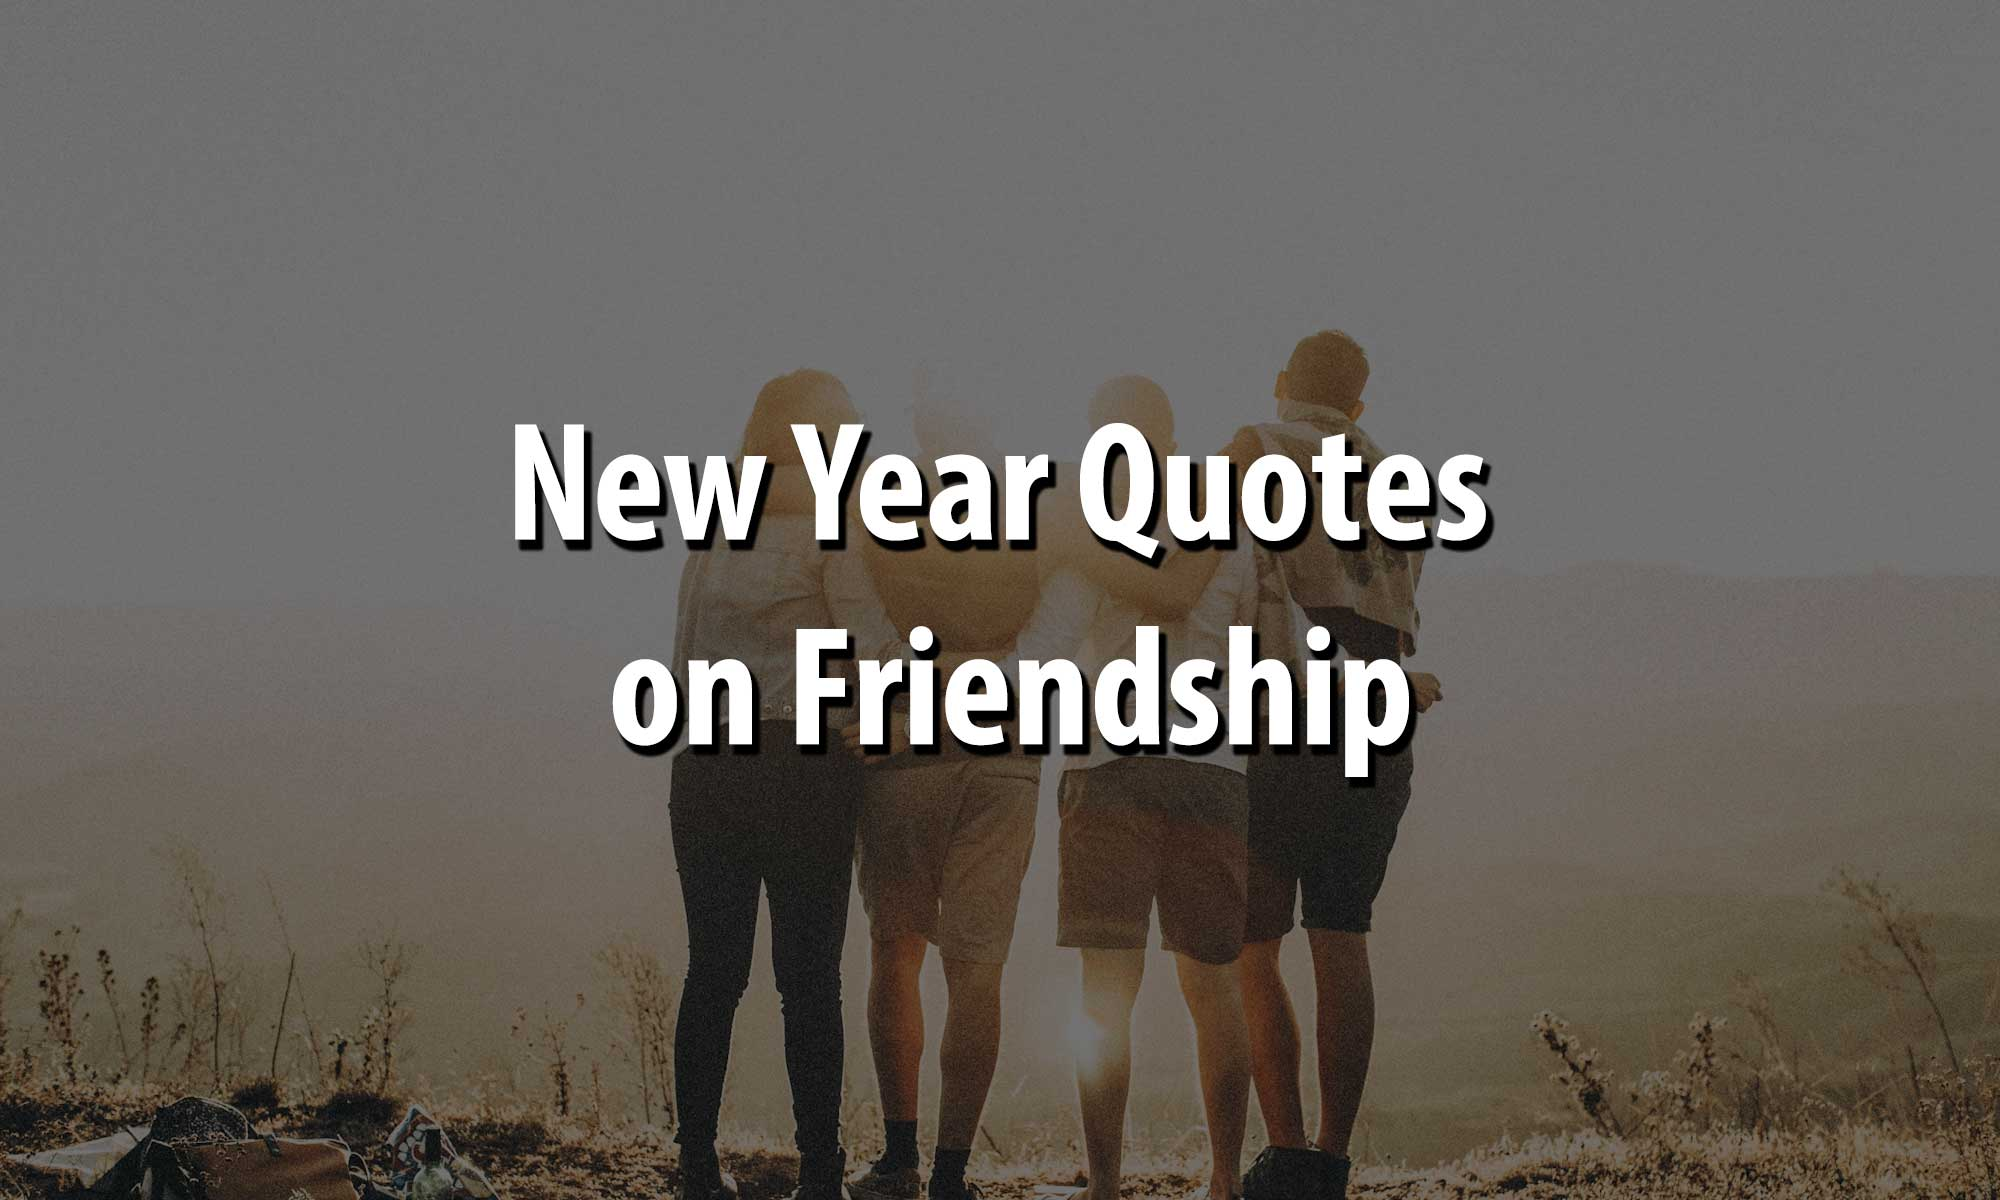 New Year Quotes on Friendship